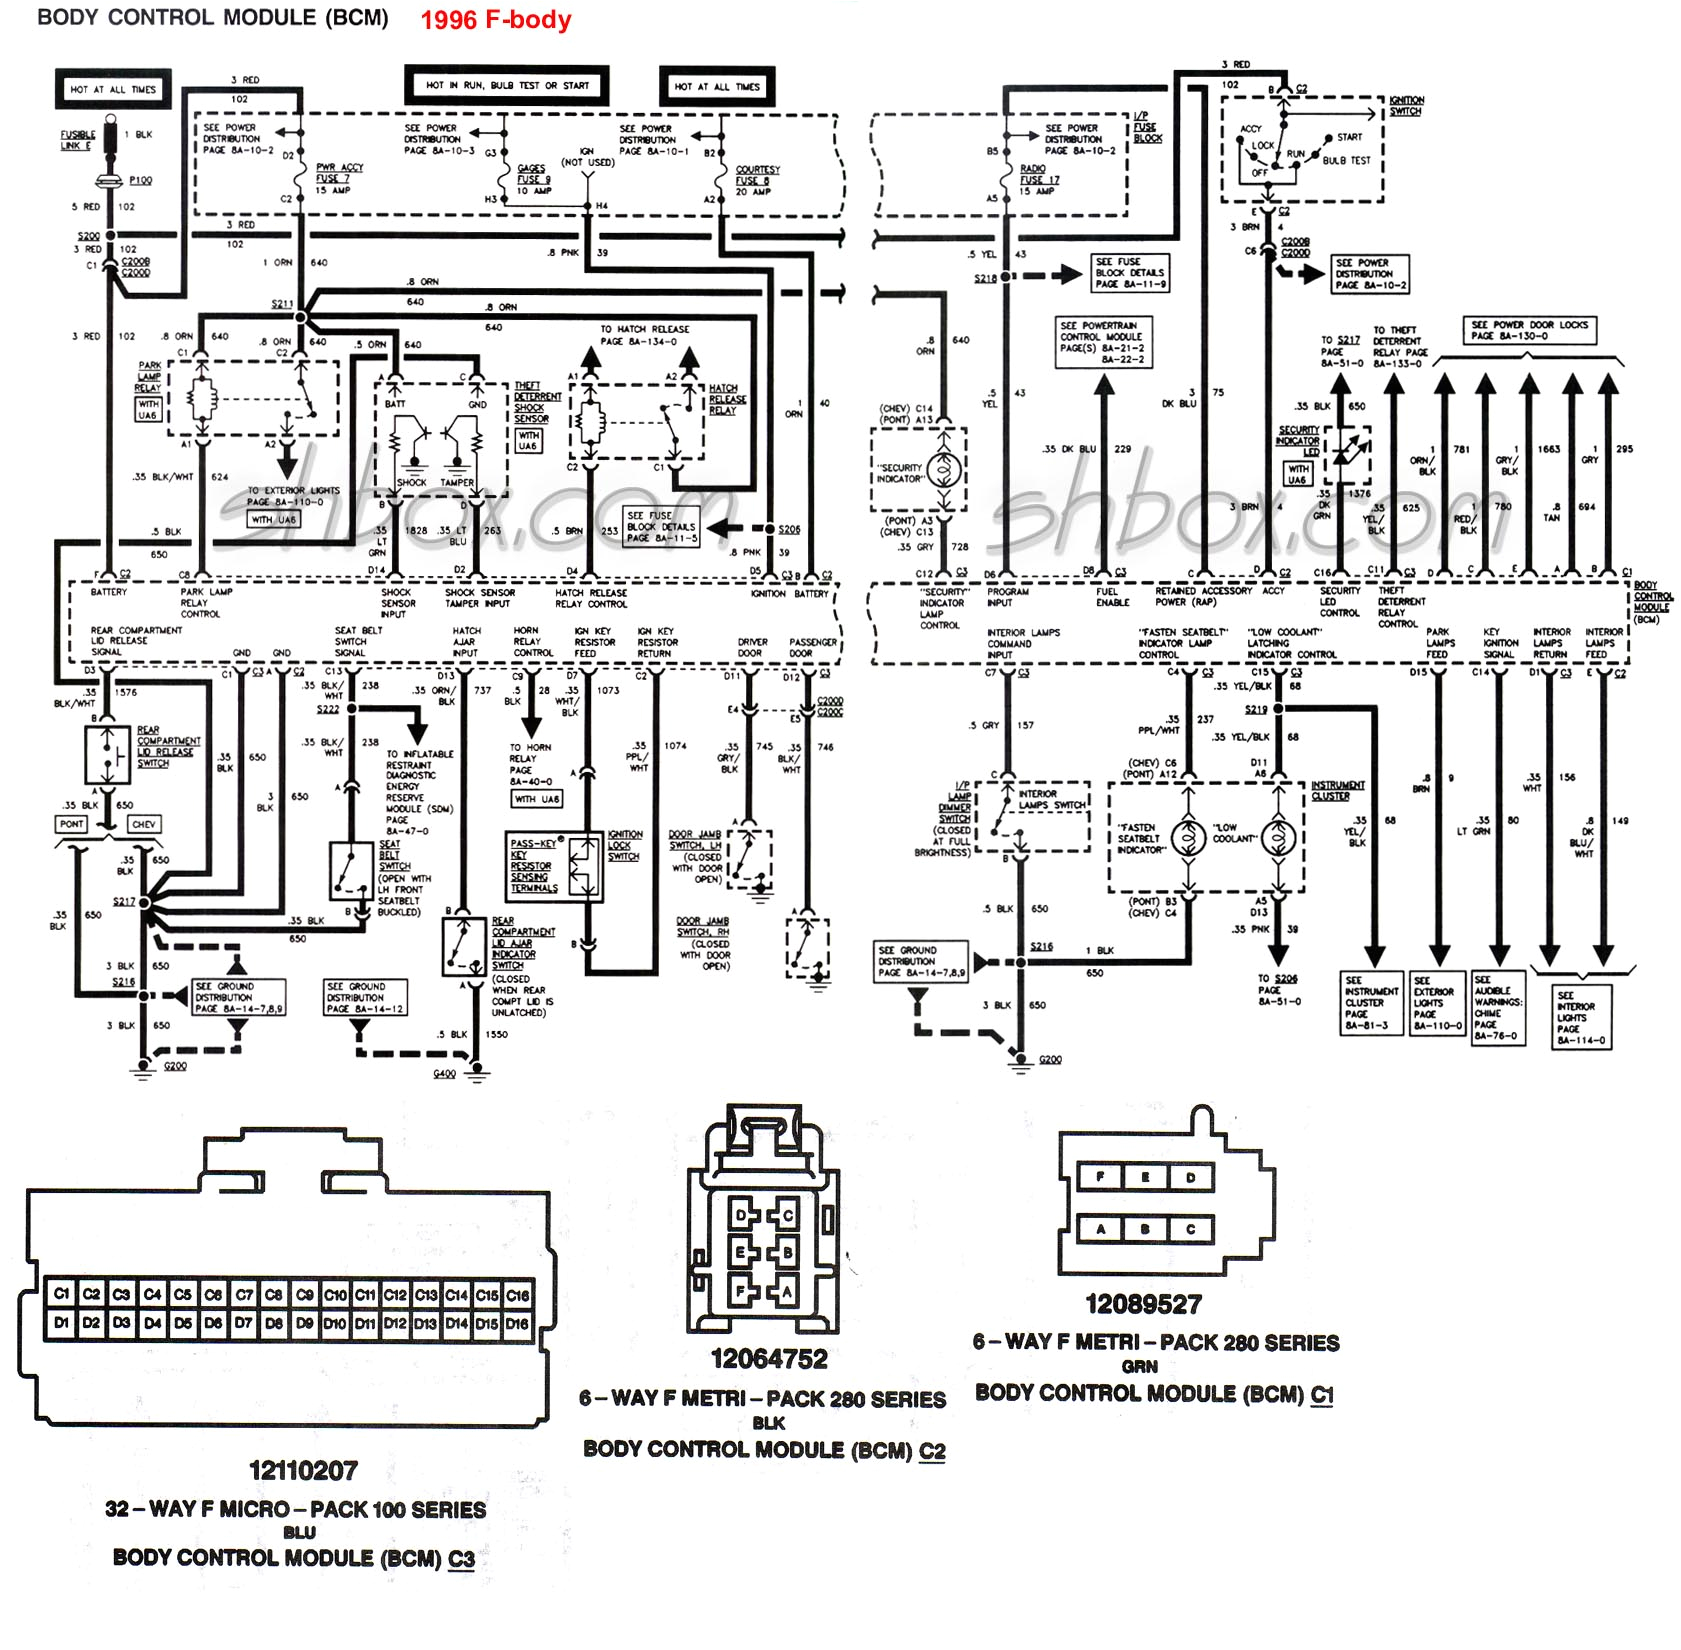 98 camaro wiring schematic 4th gen lt1 f body tech aidsbcm body control module 1996